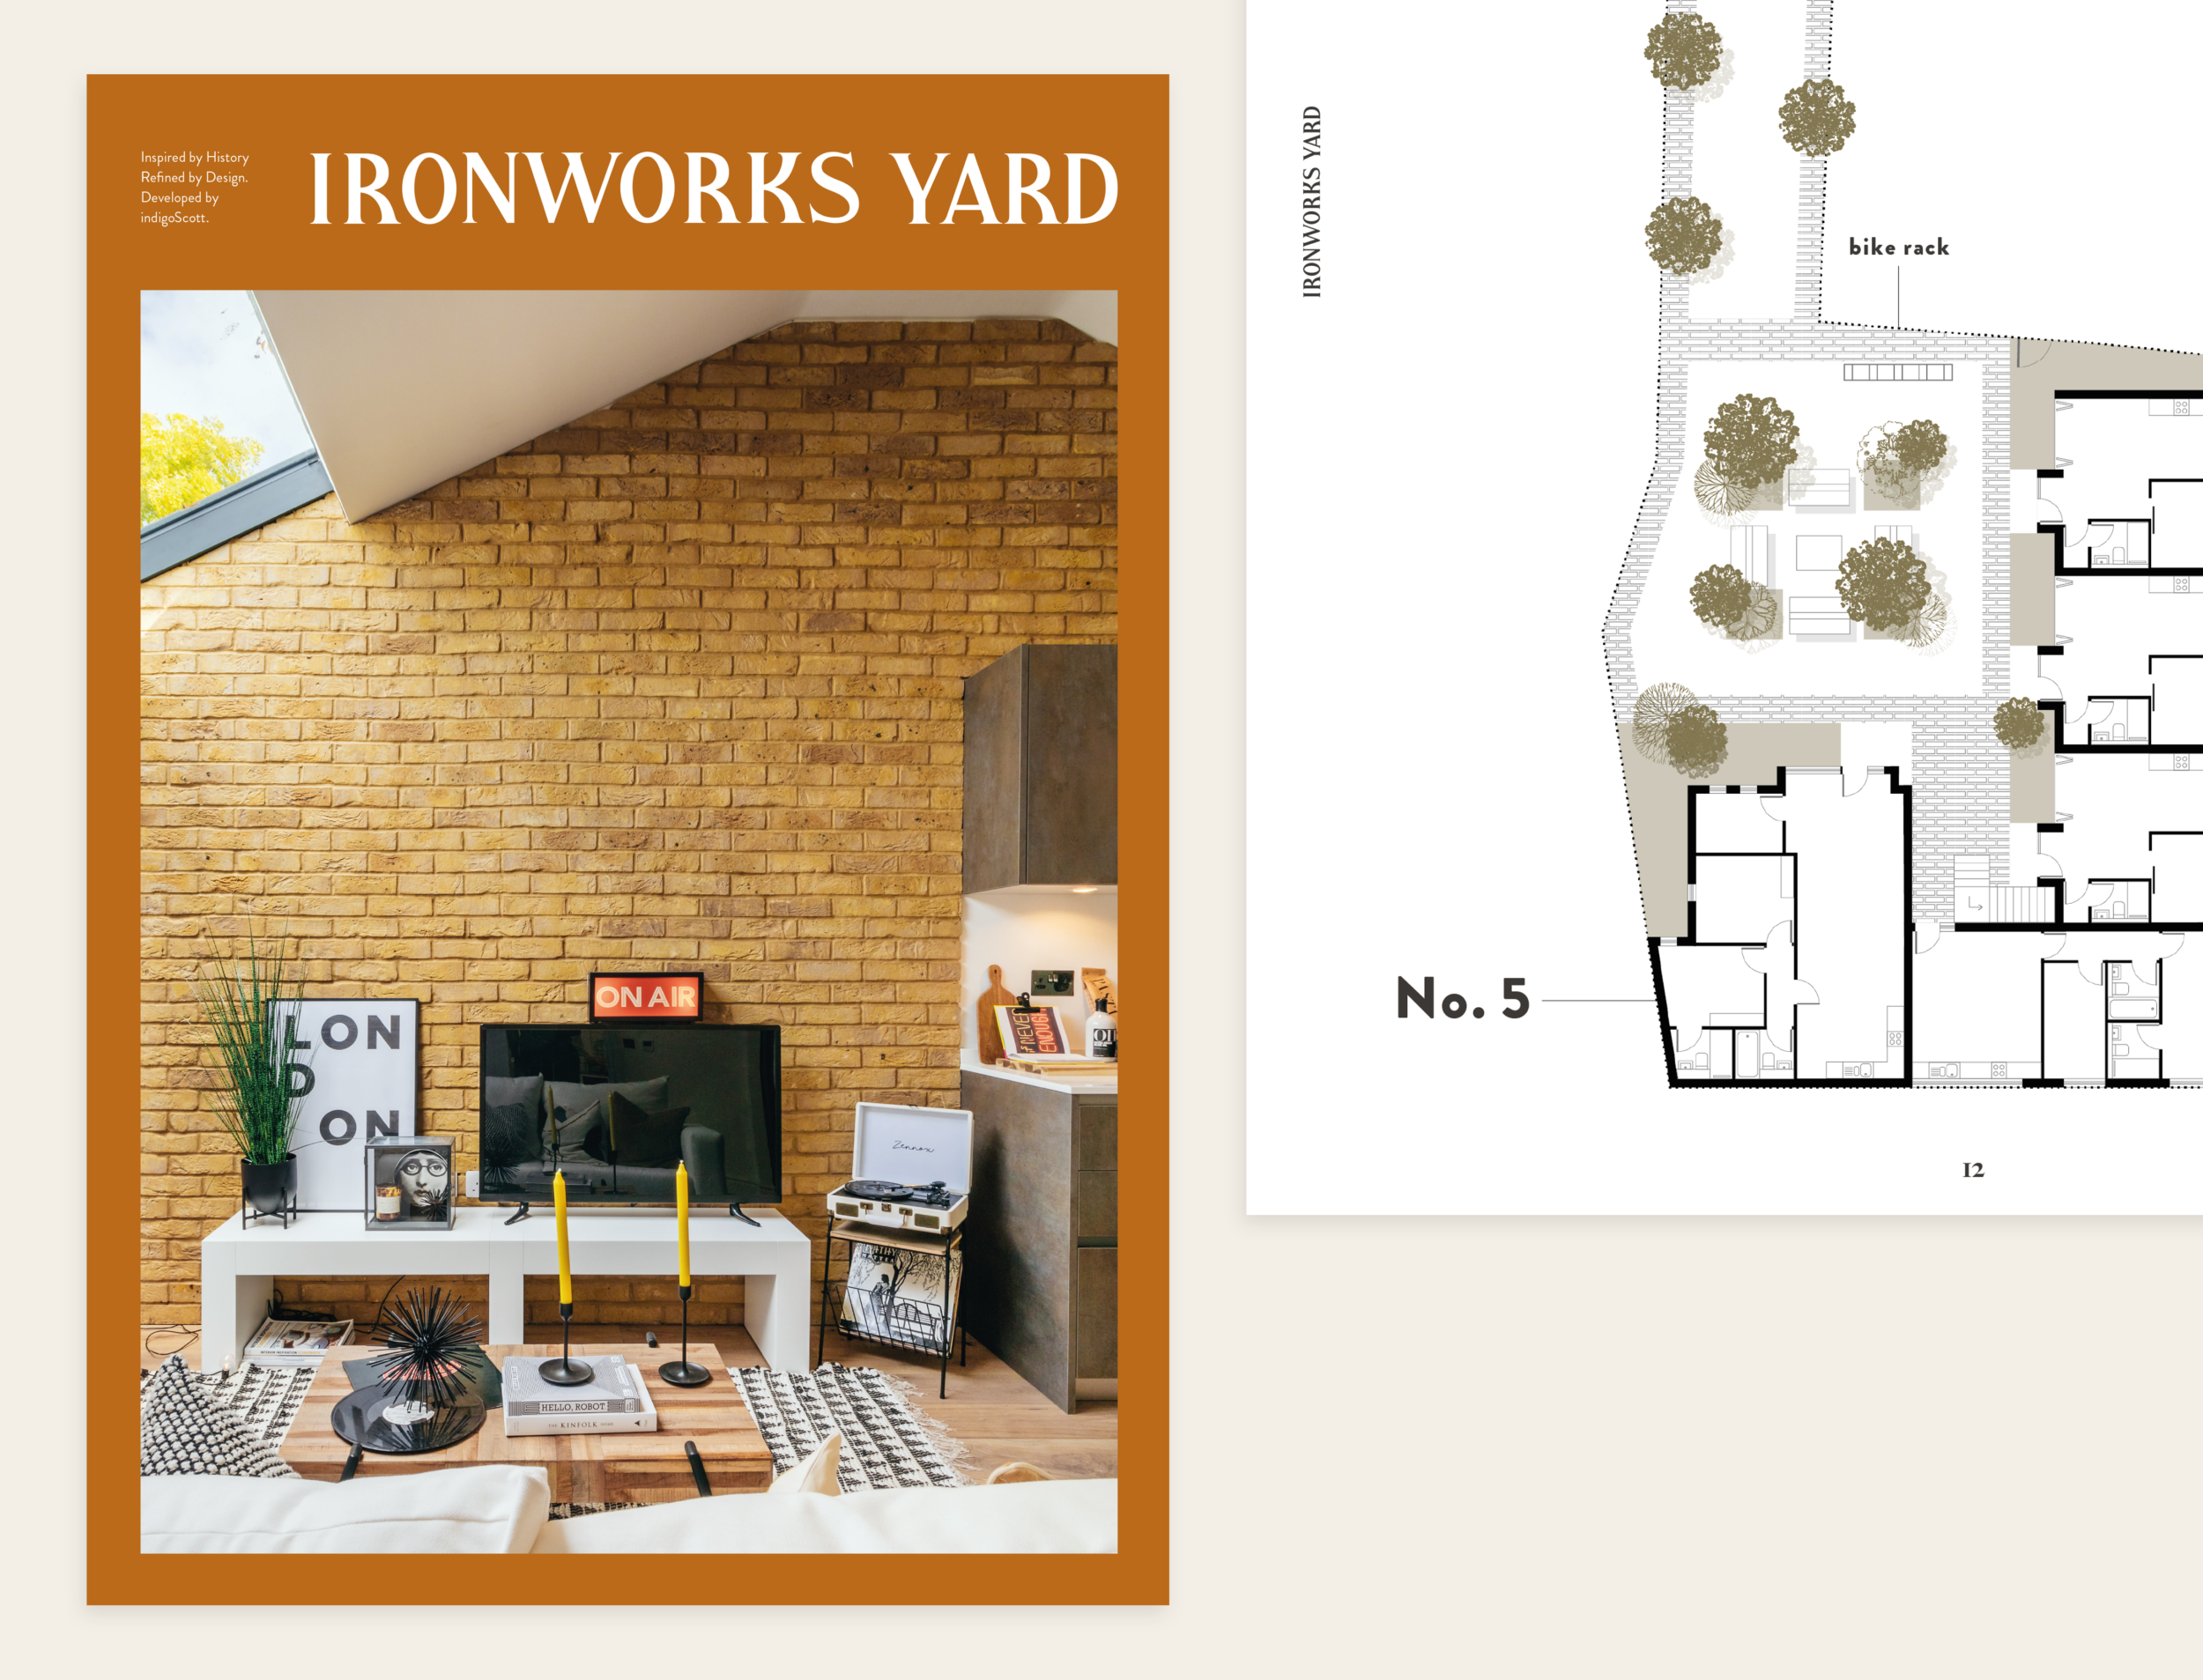 Brochure layout spread for the Ironworks Yard development featuring the front cover and part of the site map.